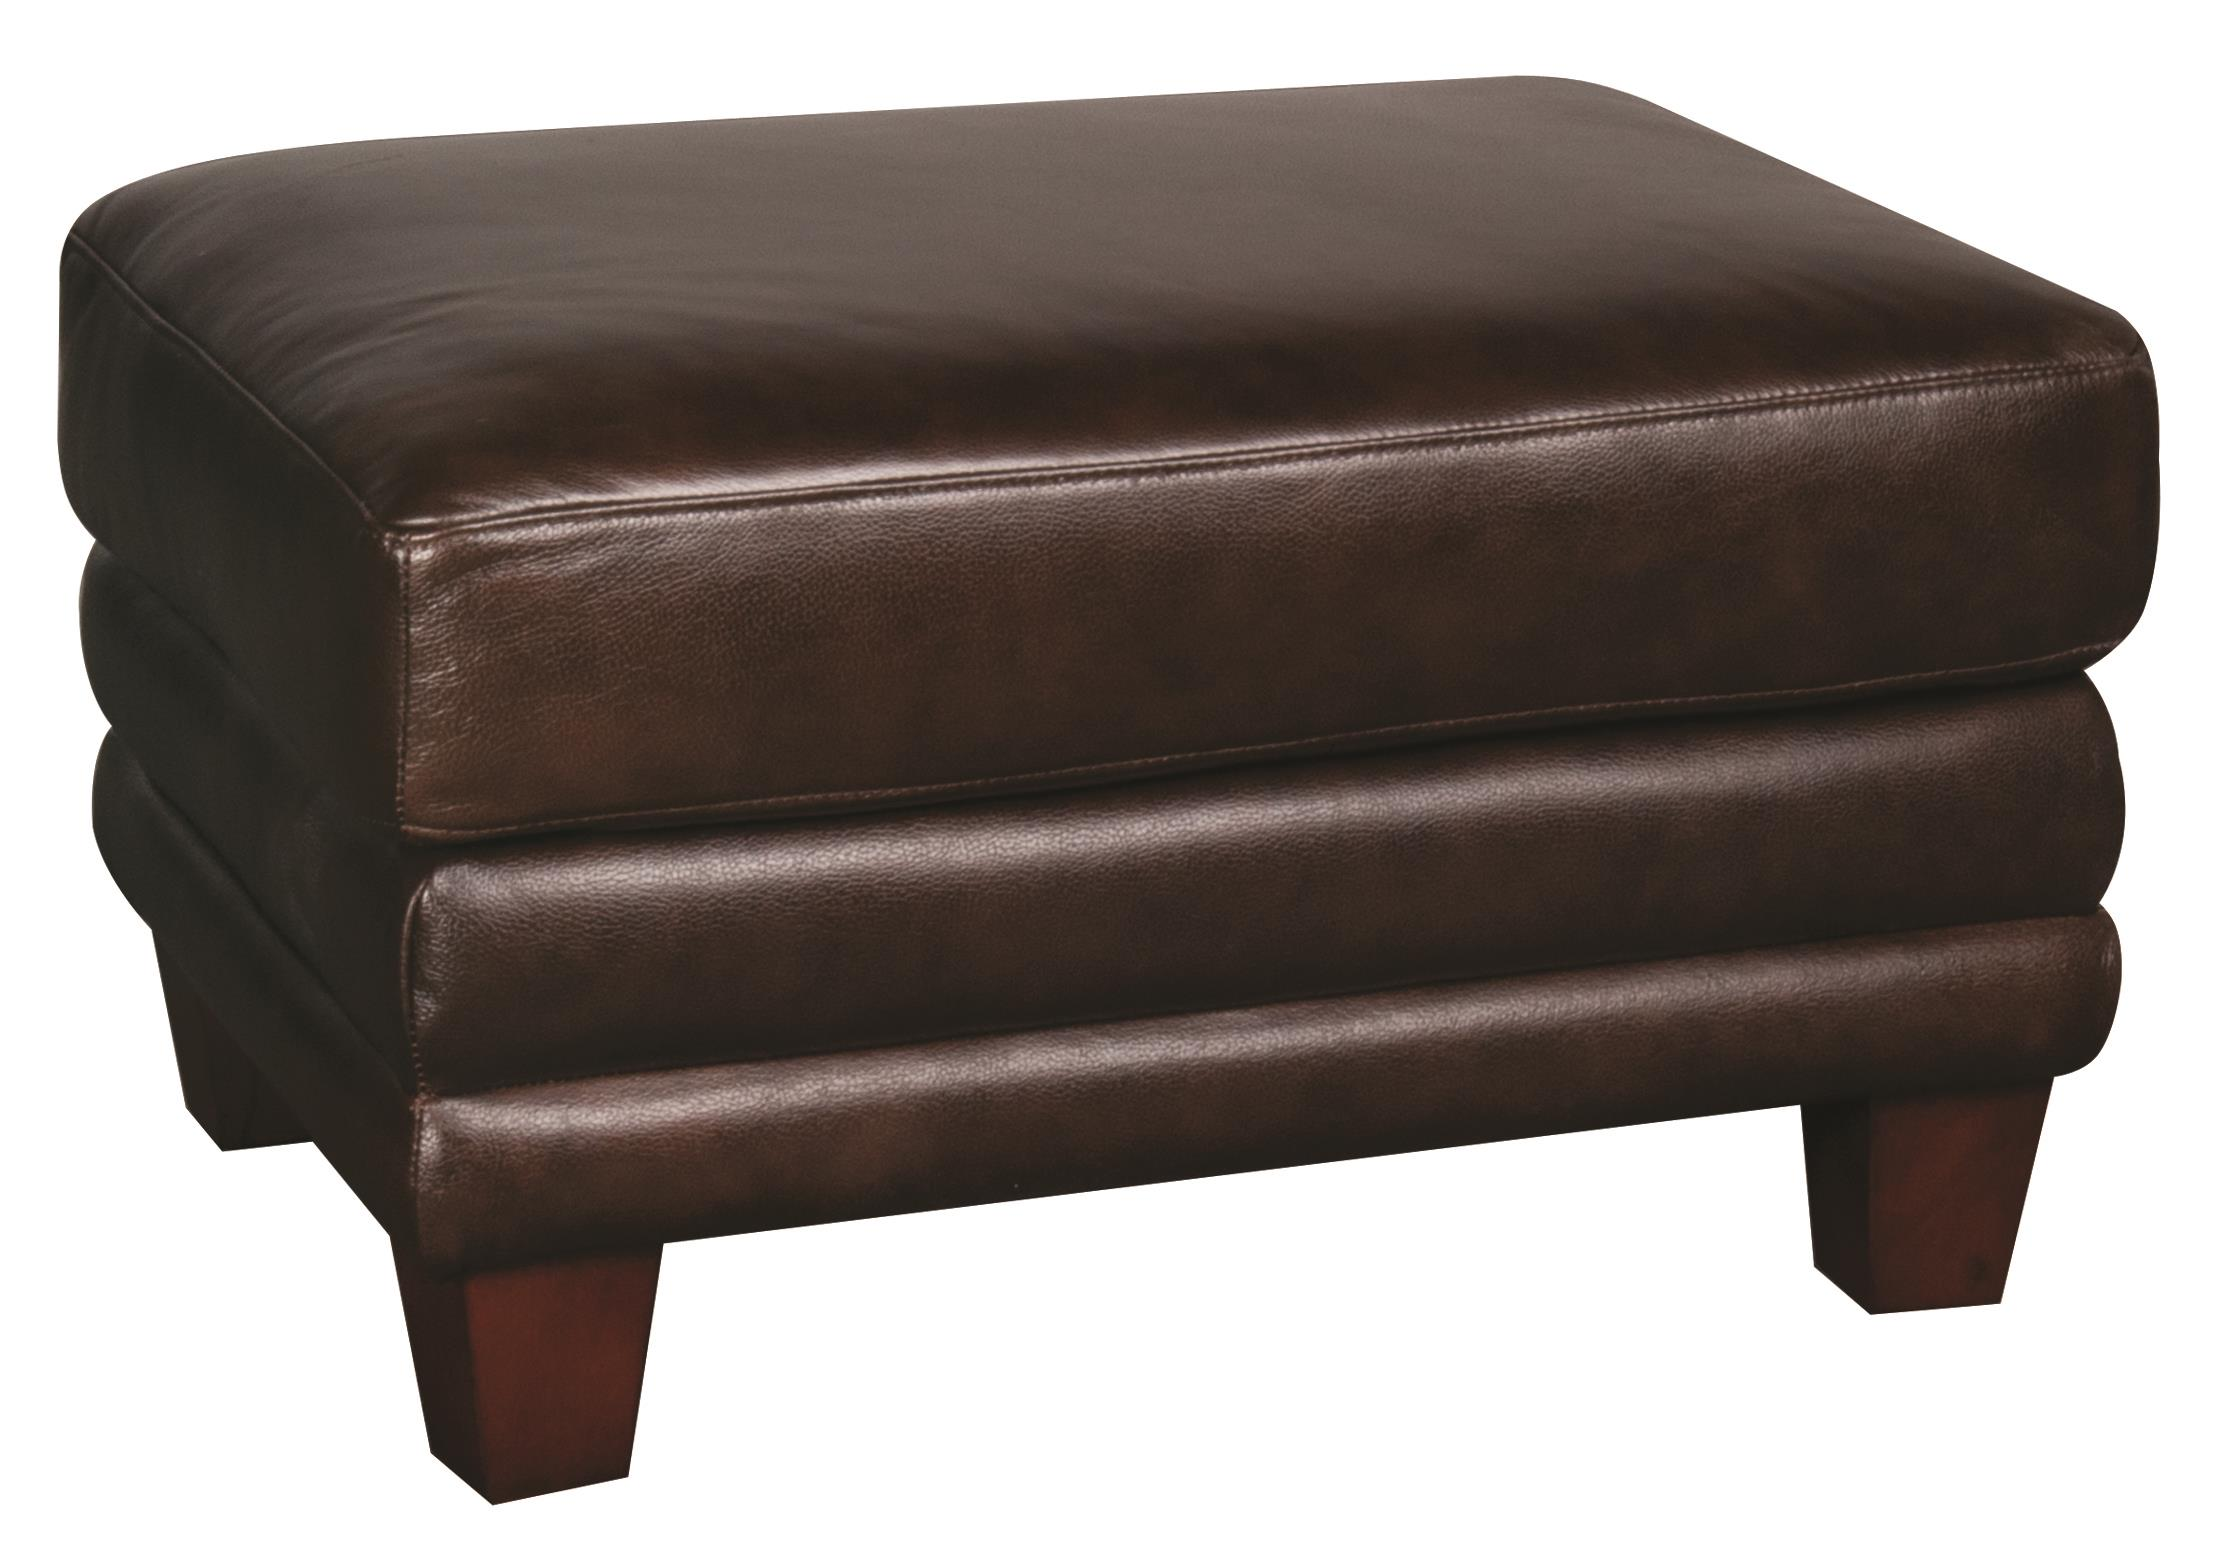 Morris Home Furnishings Victor Victor 100% Leather Ottoman - Item Number: 114807083